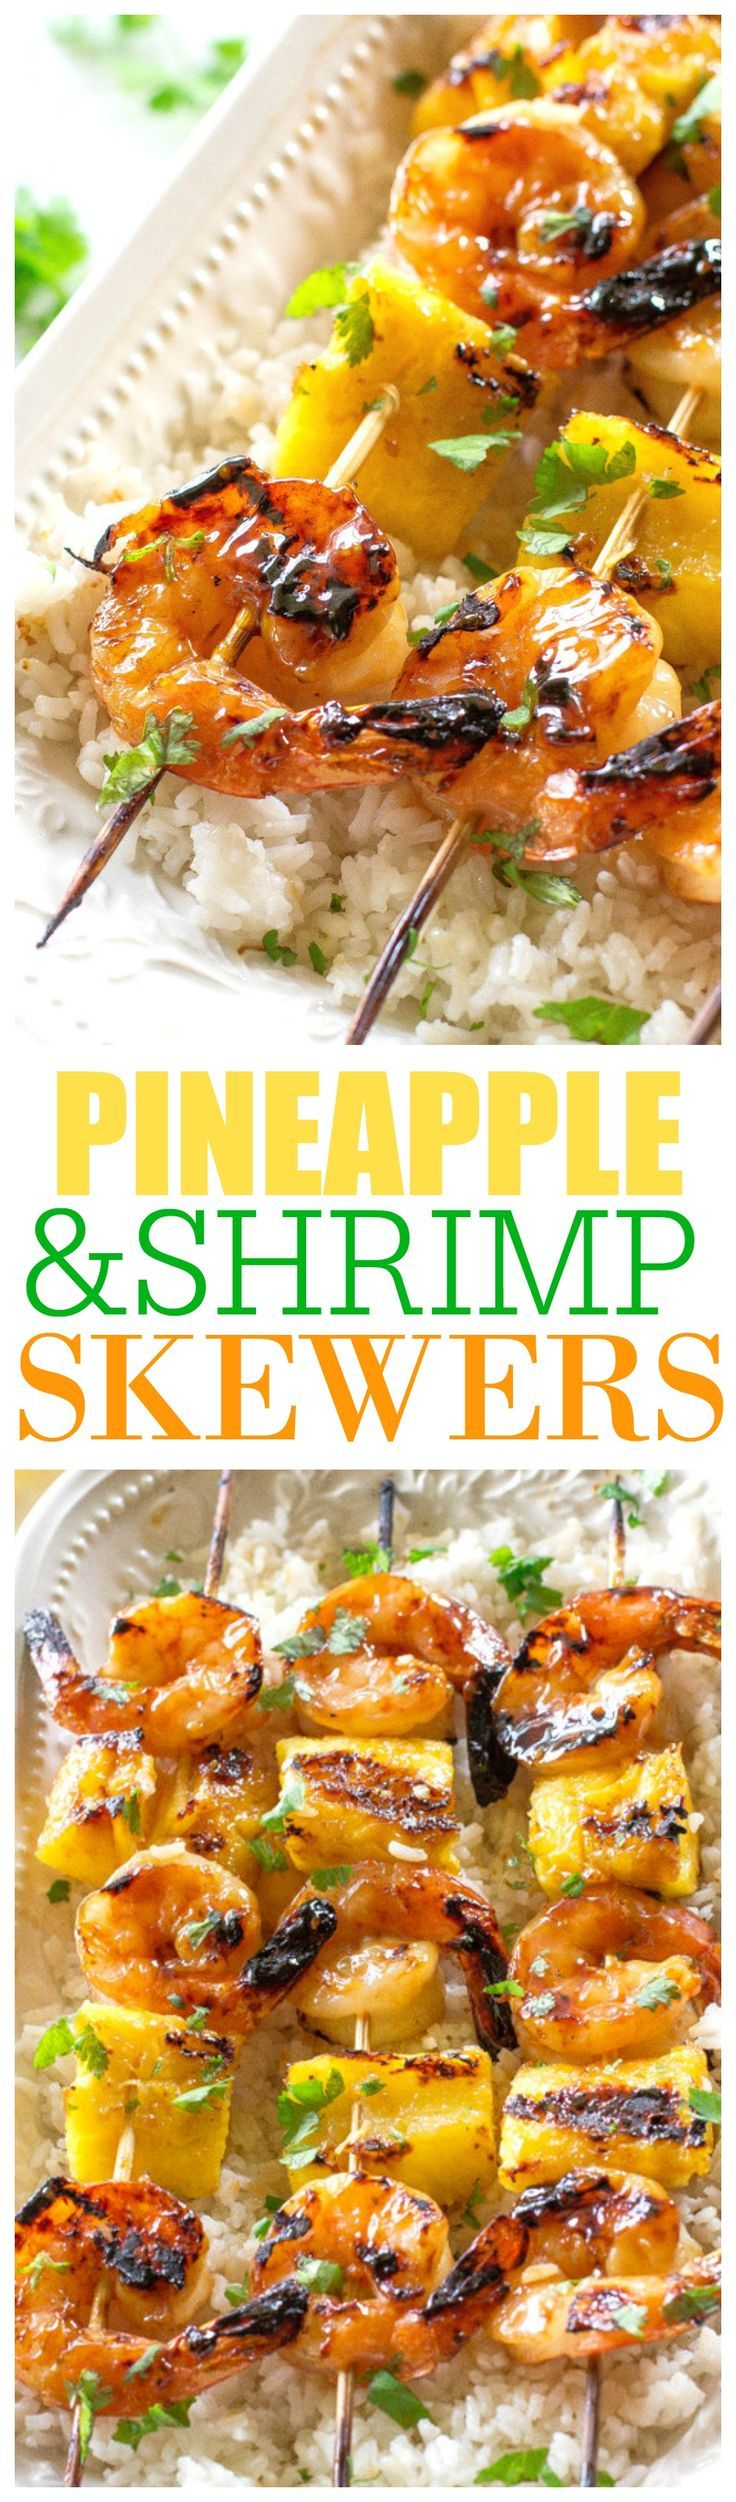 These Grilled Shrimp and Pineapple Skewers are served over coconut rice and are covered with Sweet Baby Ray's Teriyaki glaze | http://the-girl-who-ate-everything.com